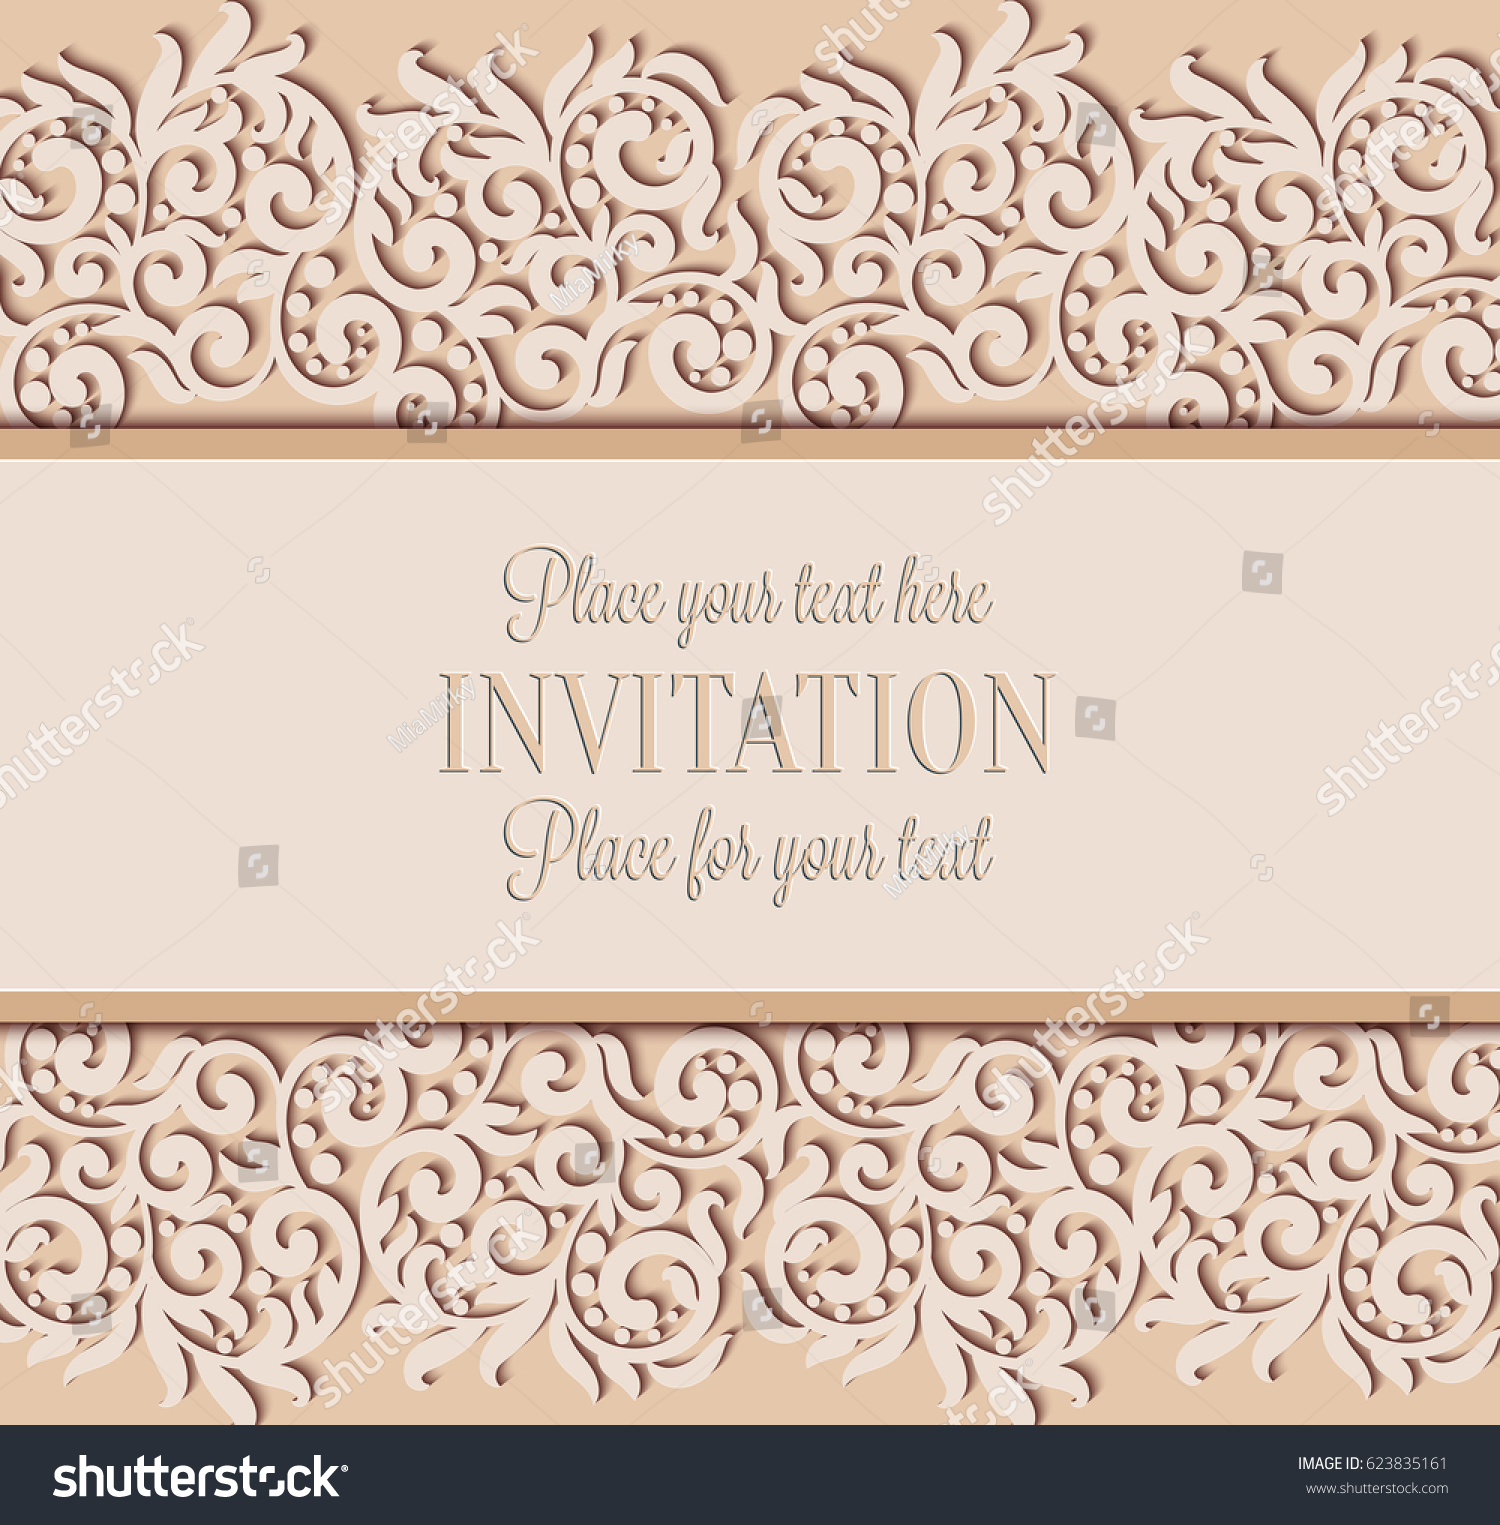 Vector floral swirls decorated invitation card stock vector vector floral swirls decorated invitation card abstract 3d background design template with place for text stopboris Choice Image